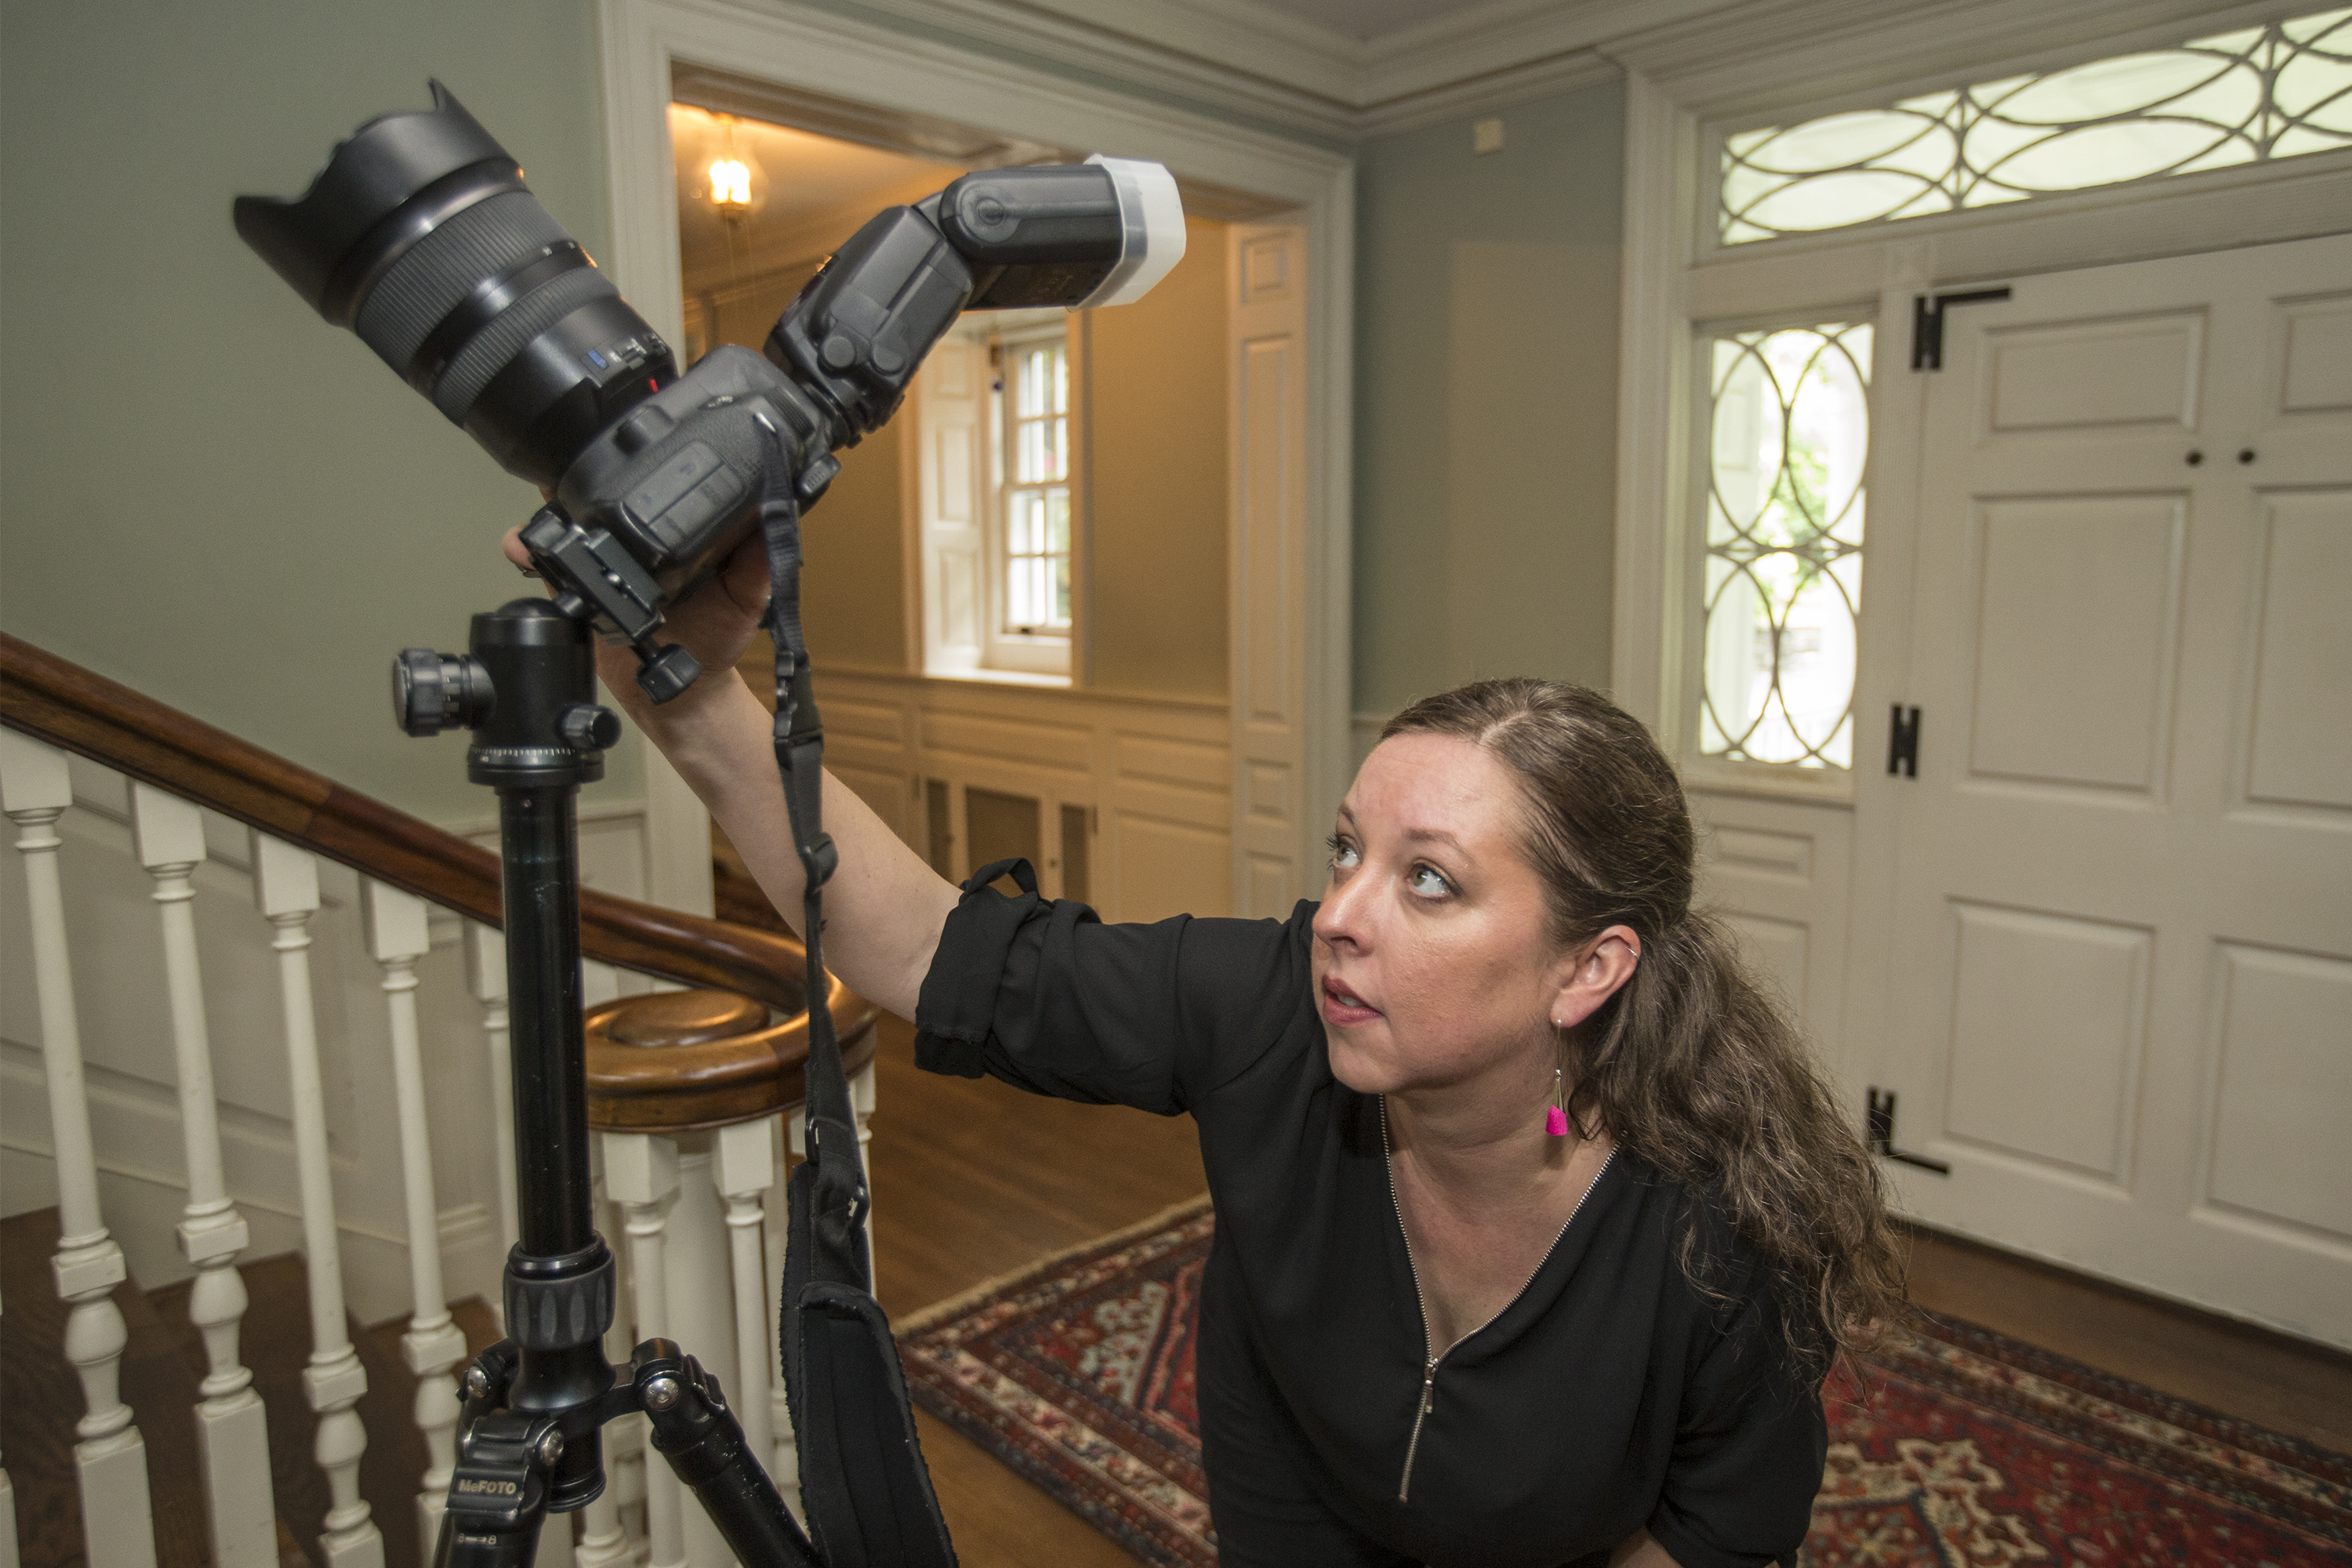 Real Estate photographer Kate Devlin looks at the back of her Canon digital slr, at the LED screen, to make sure her exposure of the staircase in a Glenside home for sale, is correct.